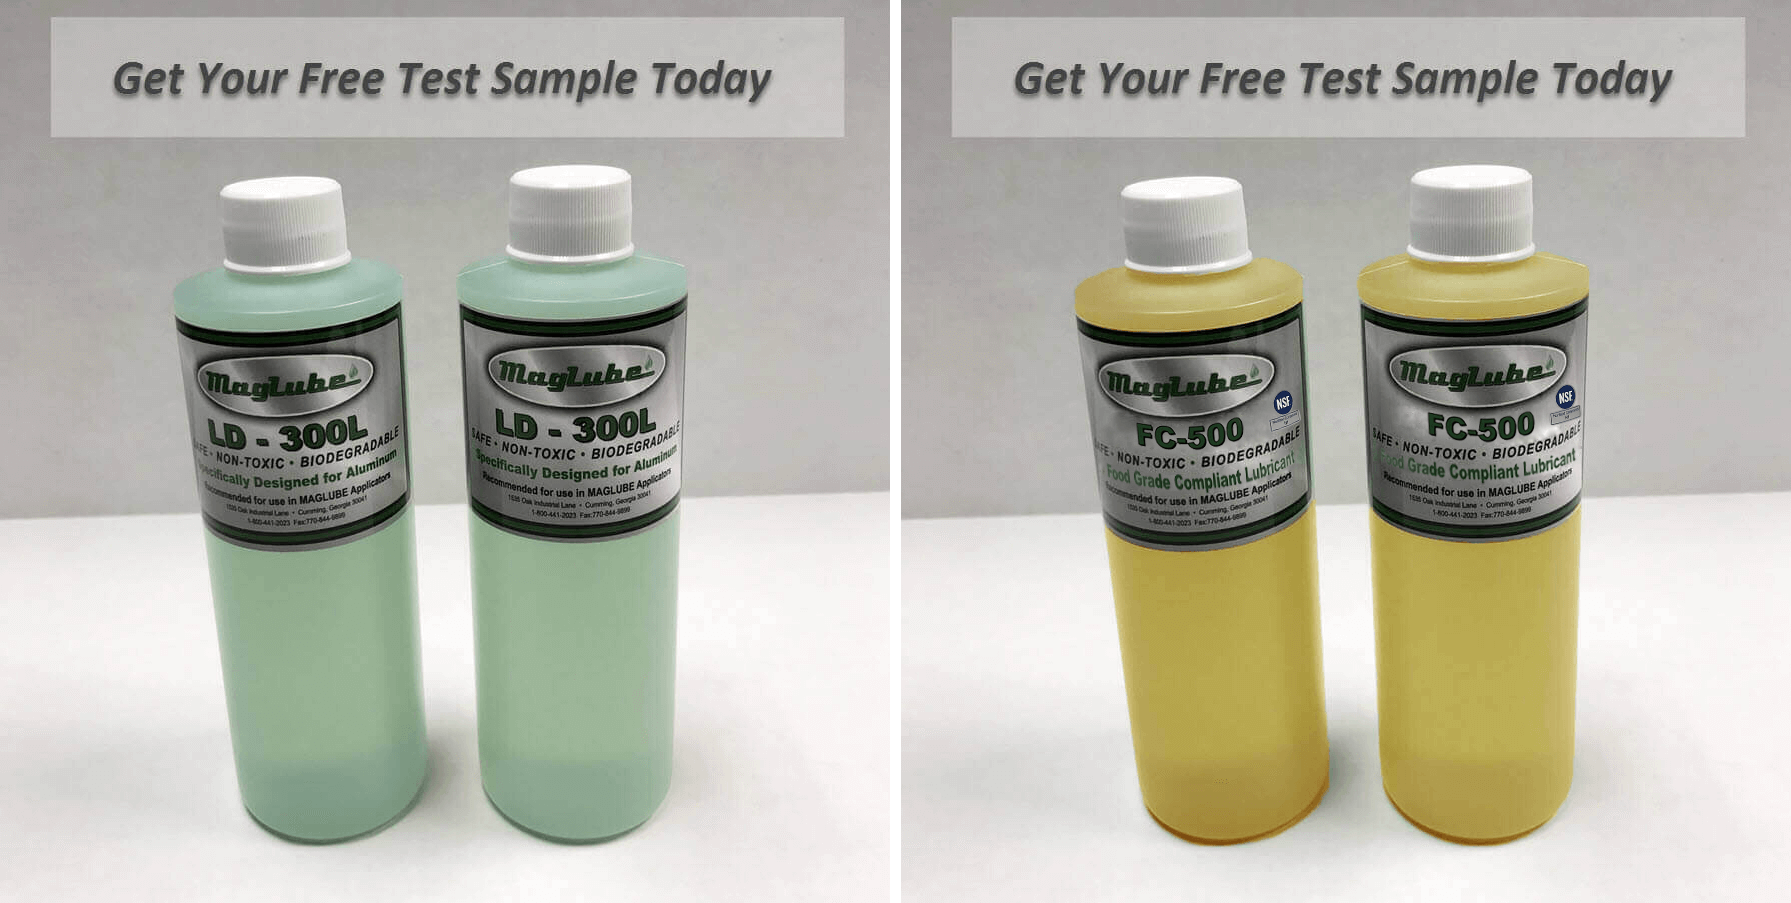 Free lubricant sample bottles